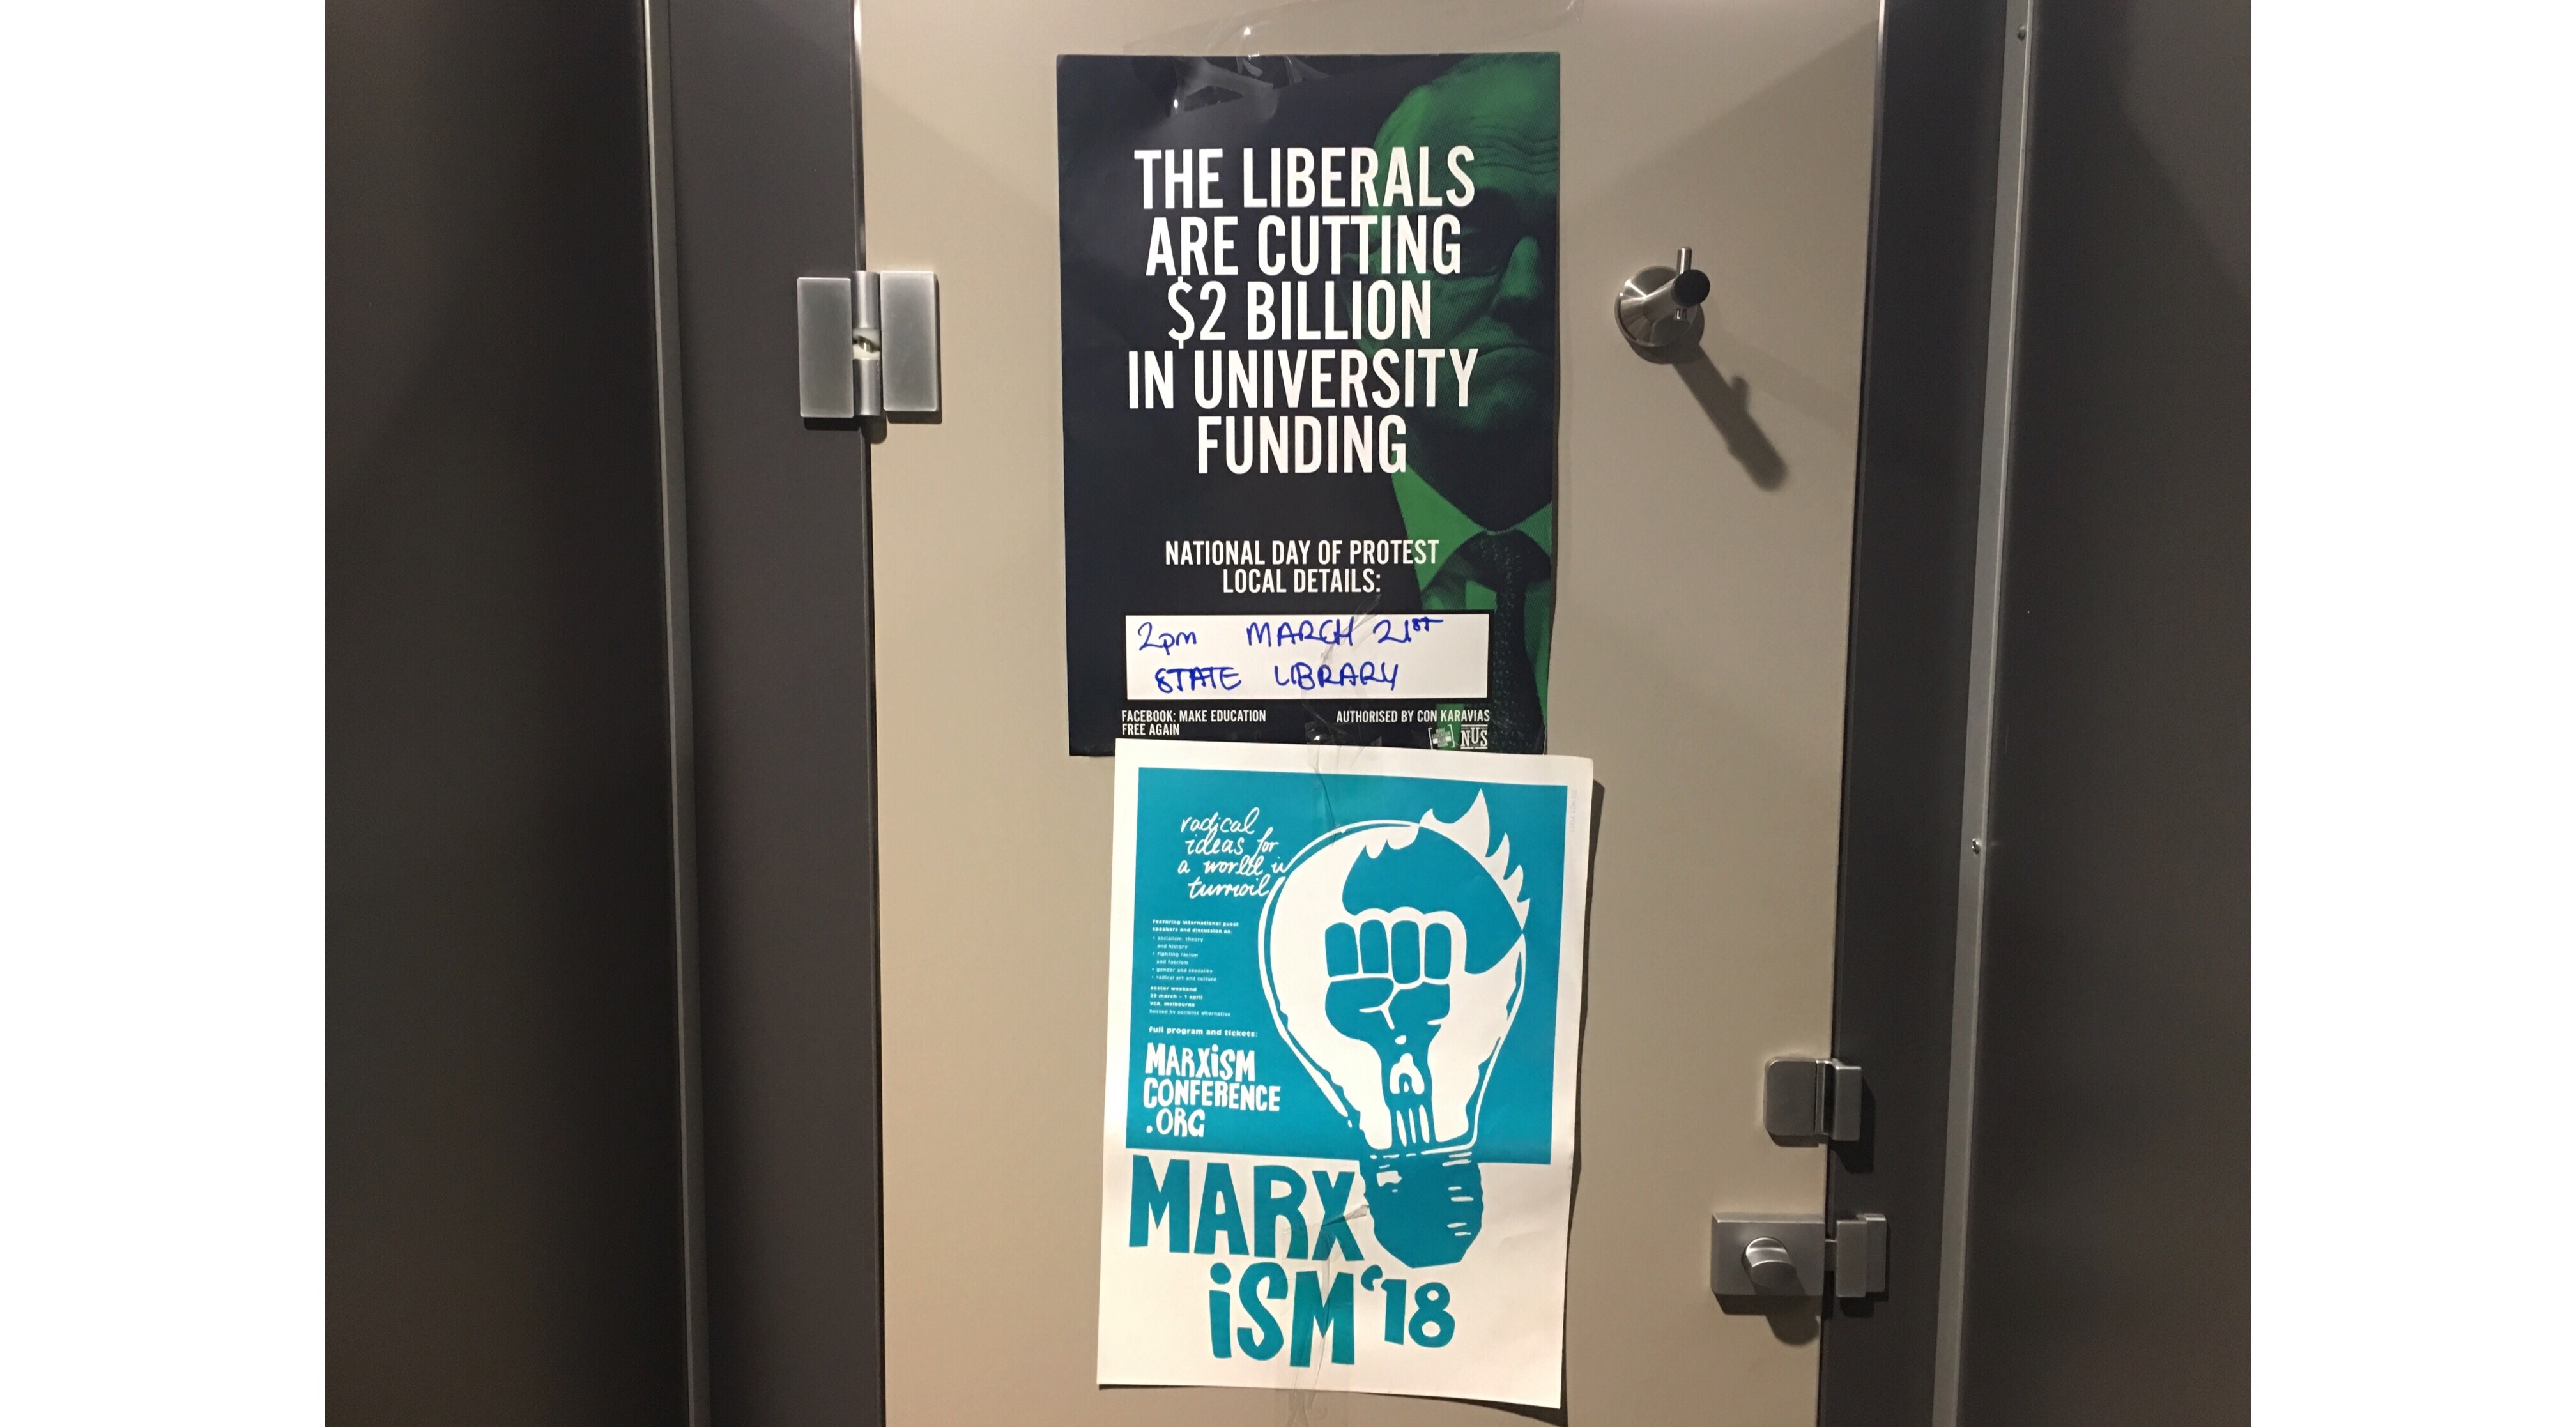 """""""The Liberals are cutting $2 billion in university funding"""" - text on poster"""